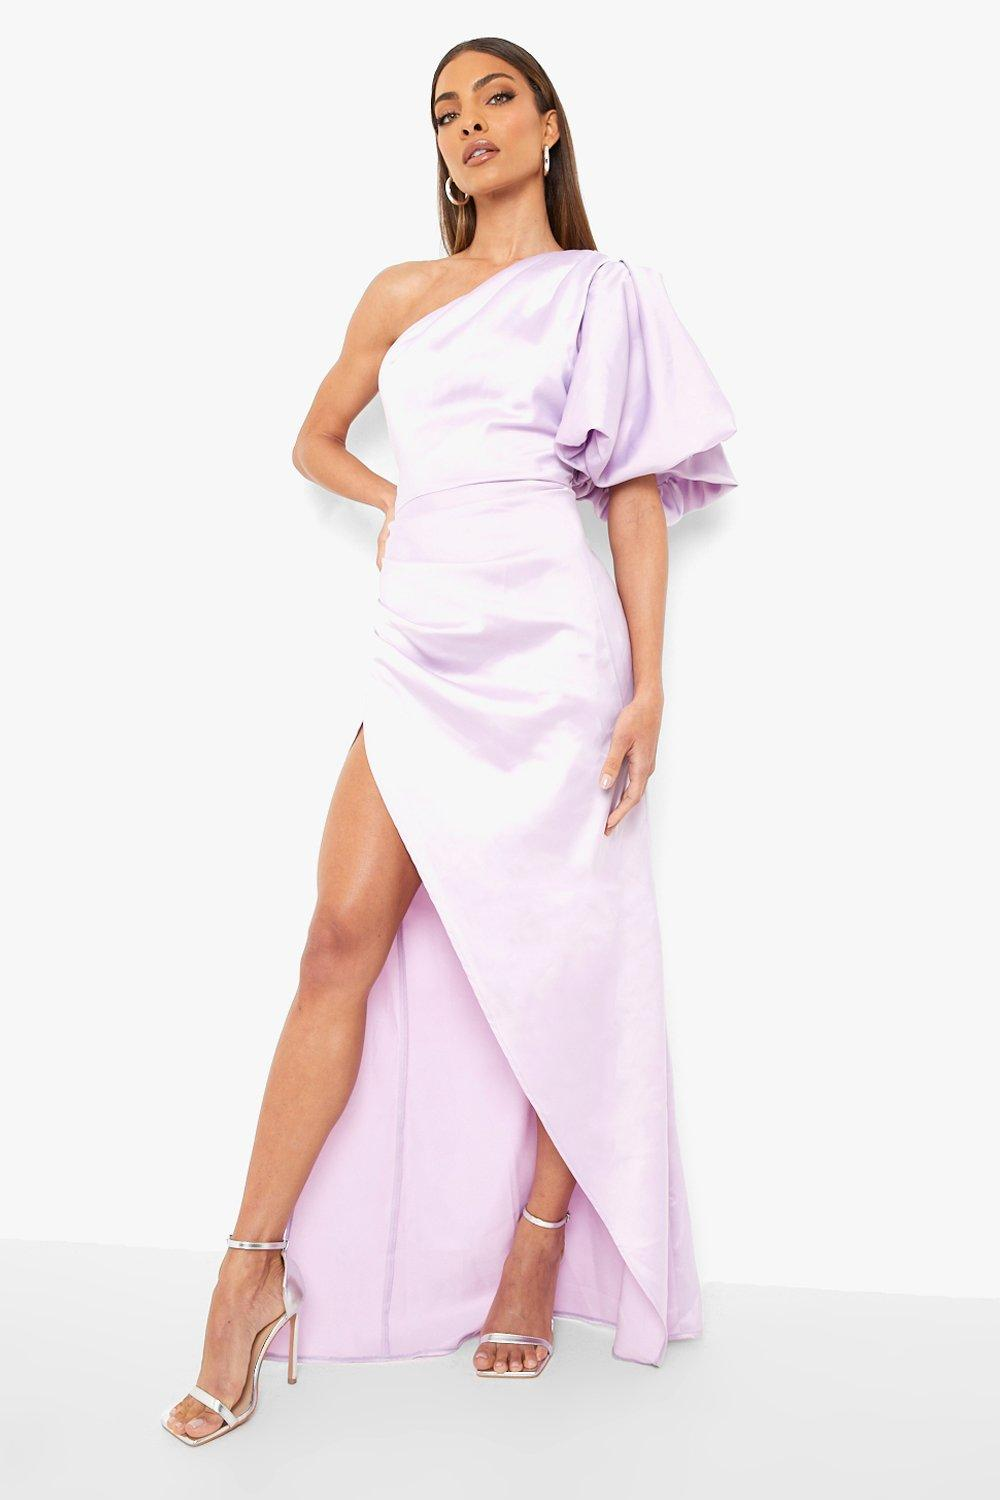 1980s Clothing, Fashion | 80s Style Clothes Womens Puff One Shoulder Side Split Maxi Dress - Purple - 14 $40.00 AT vintagedancer.com